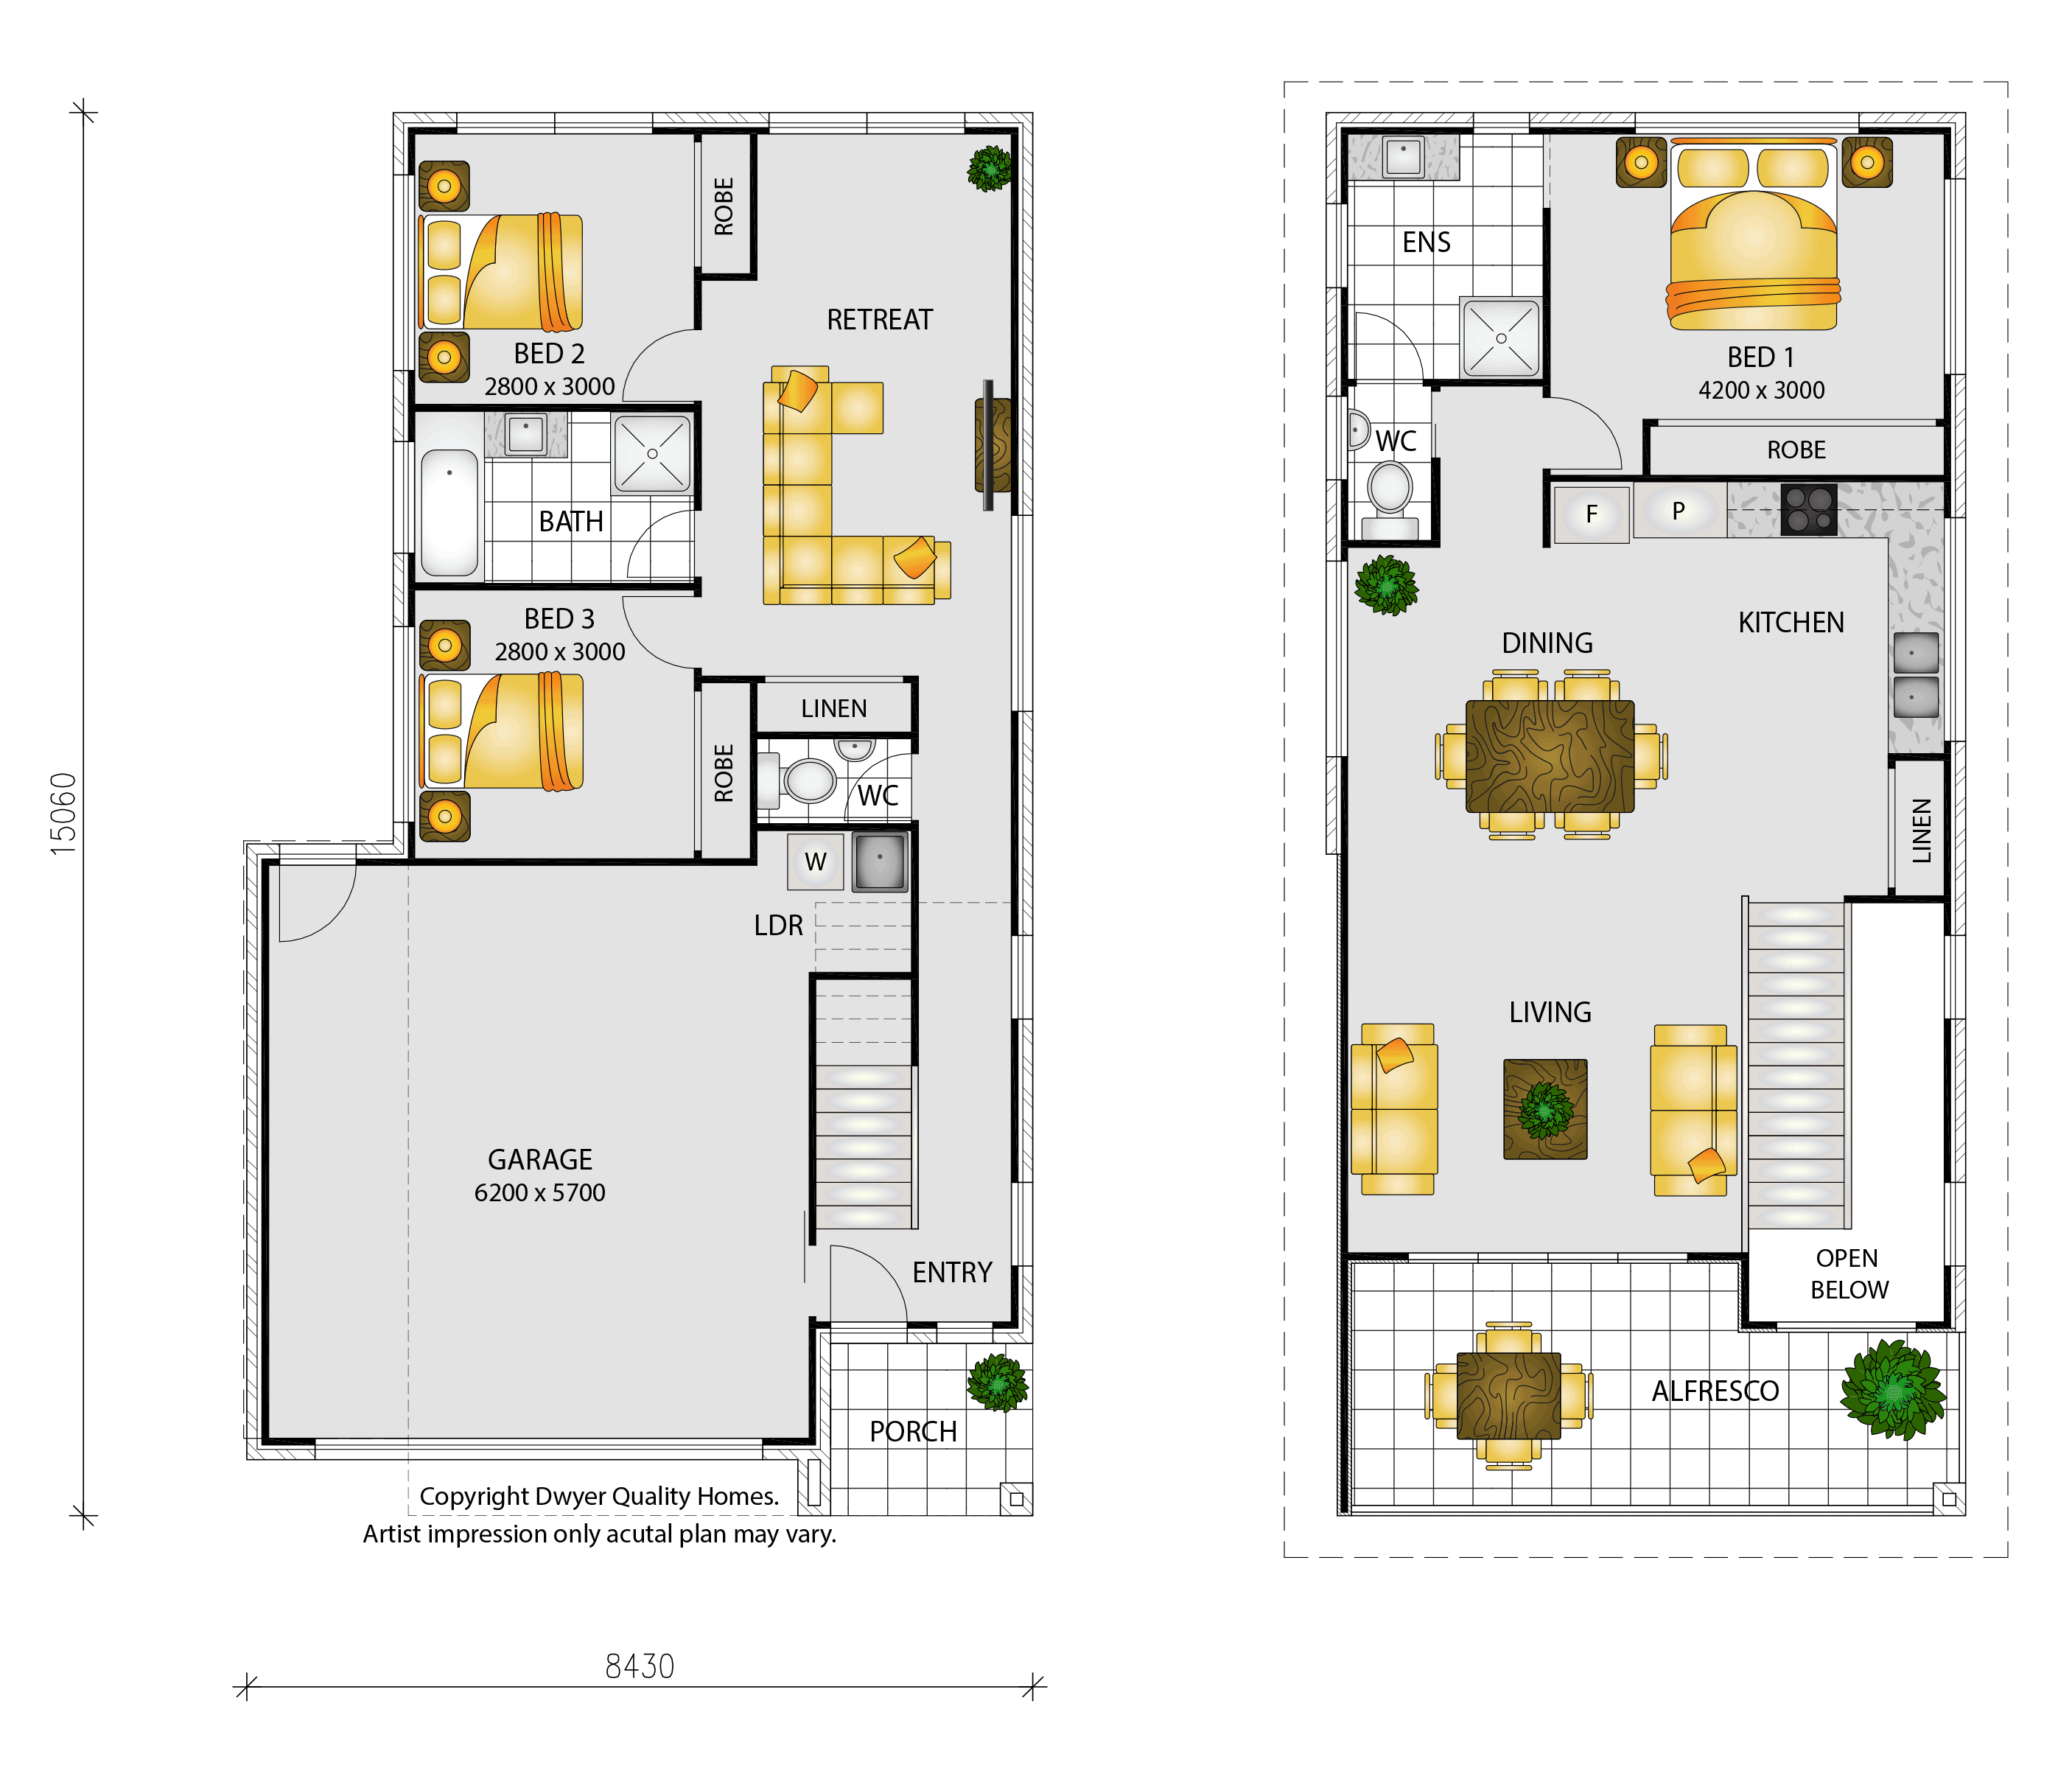 Saba - Floorplans